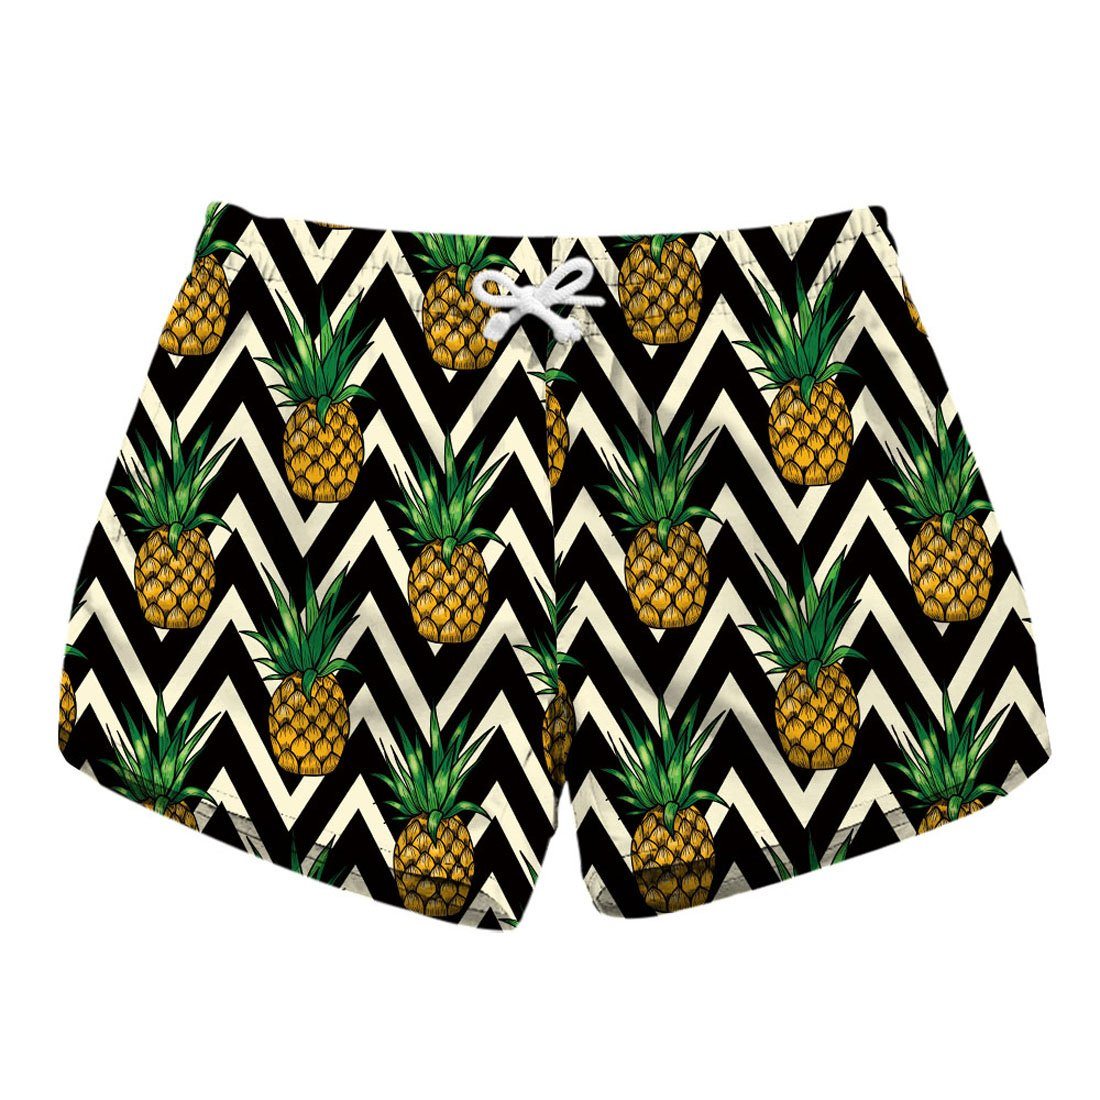 ACVIP Women's Dacron Summer Pineapple Tropical Vacation Travel Beach Shorts (pineapple2,US12-14)